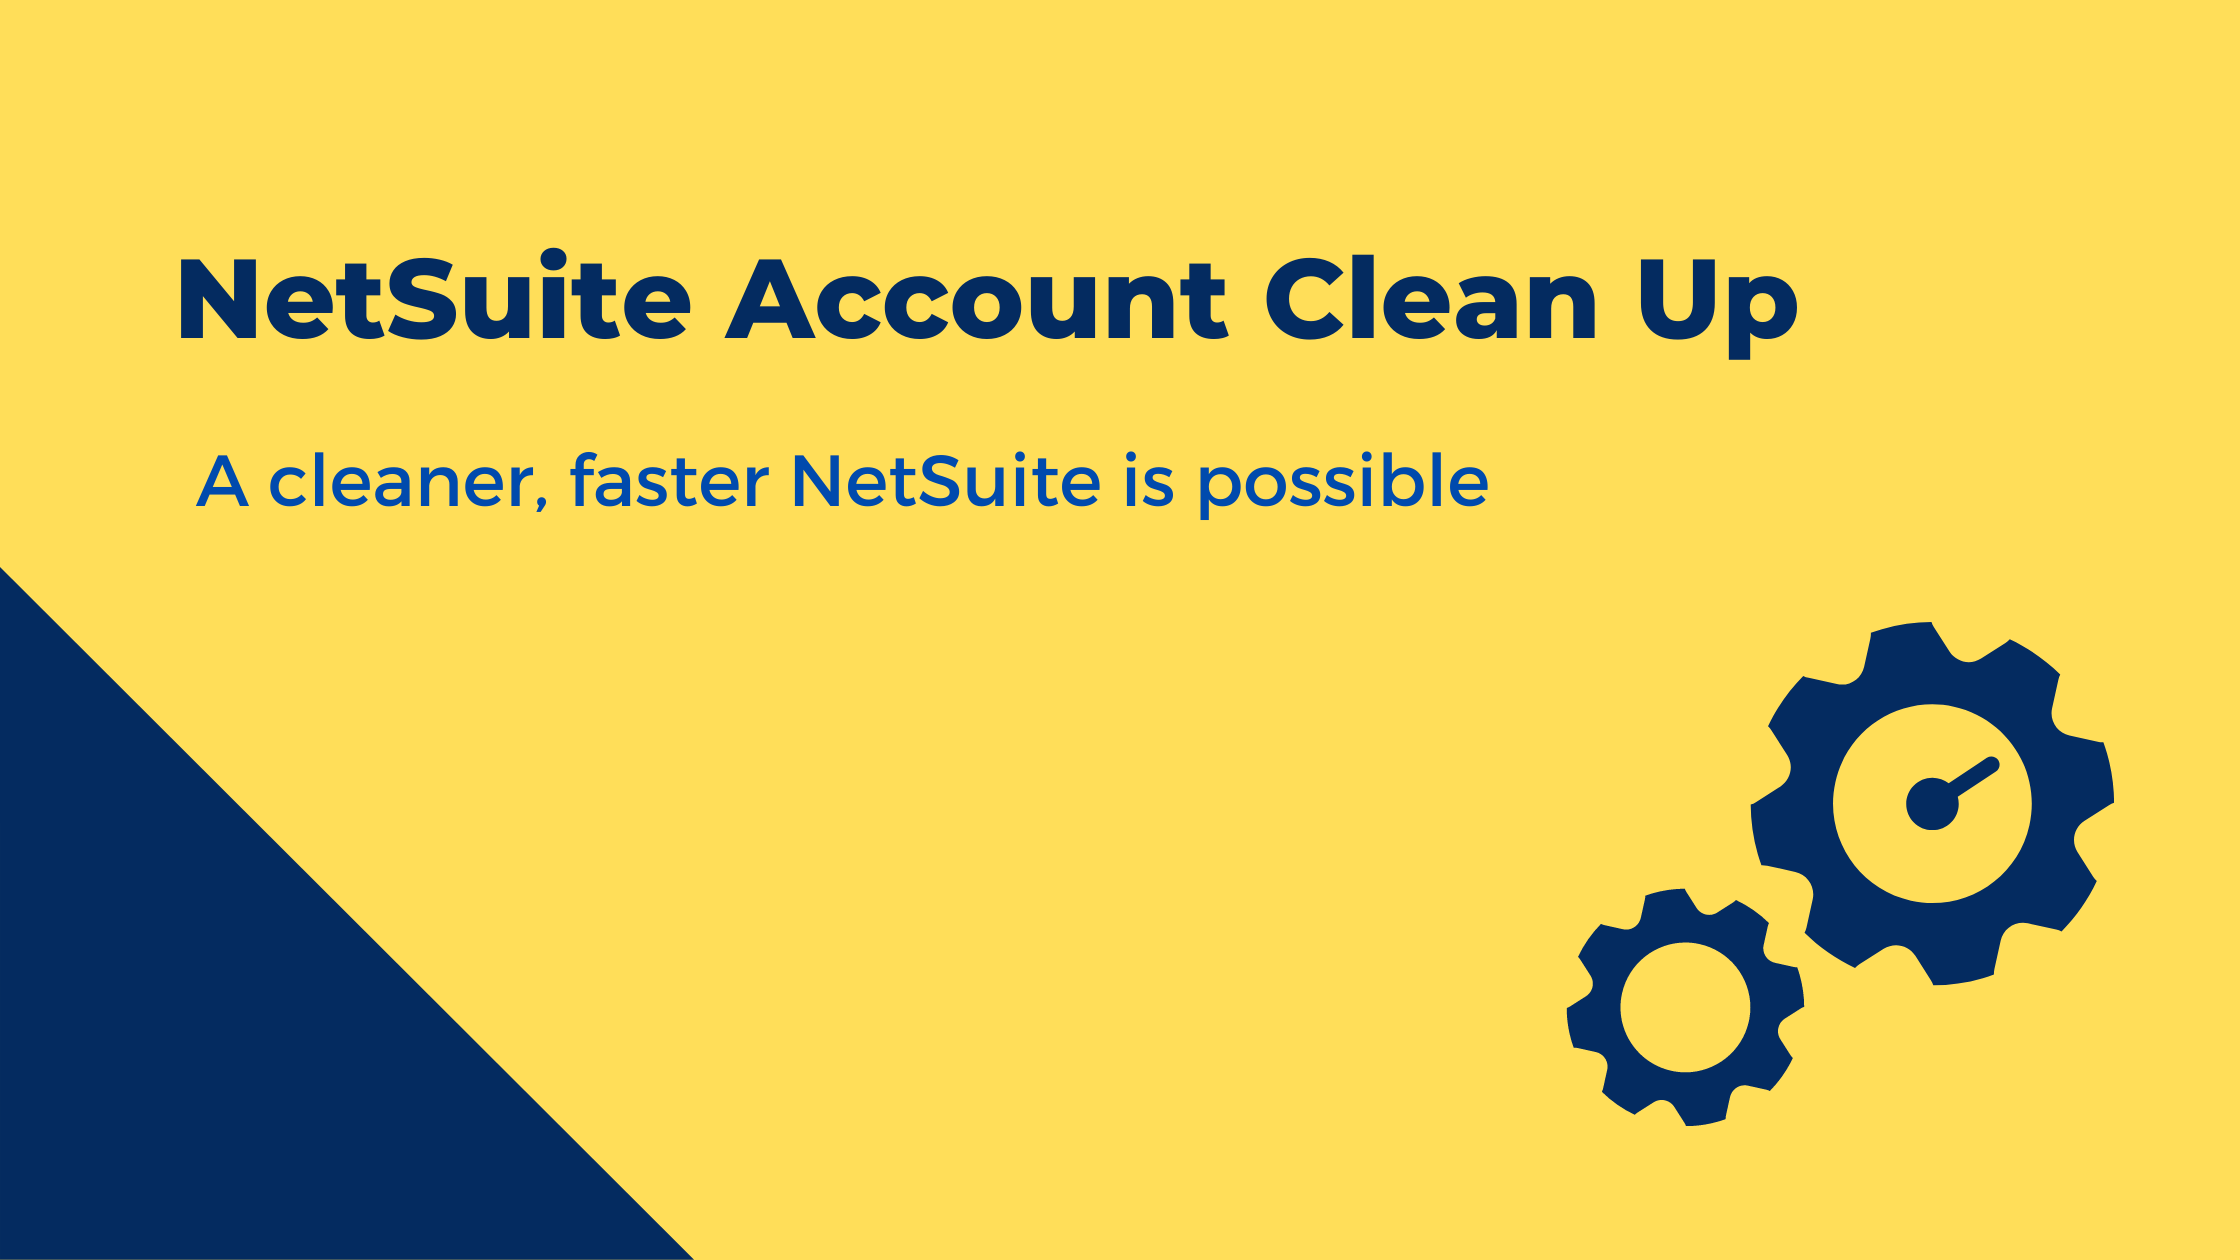 NetSuite Account Clean Up